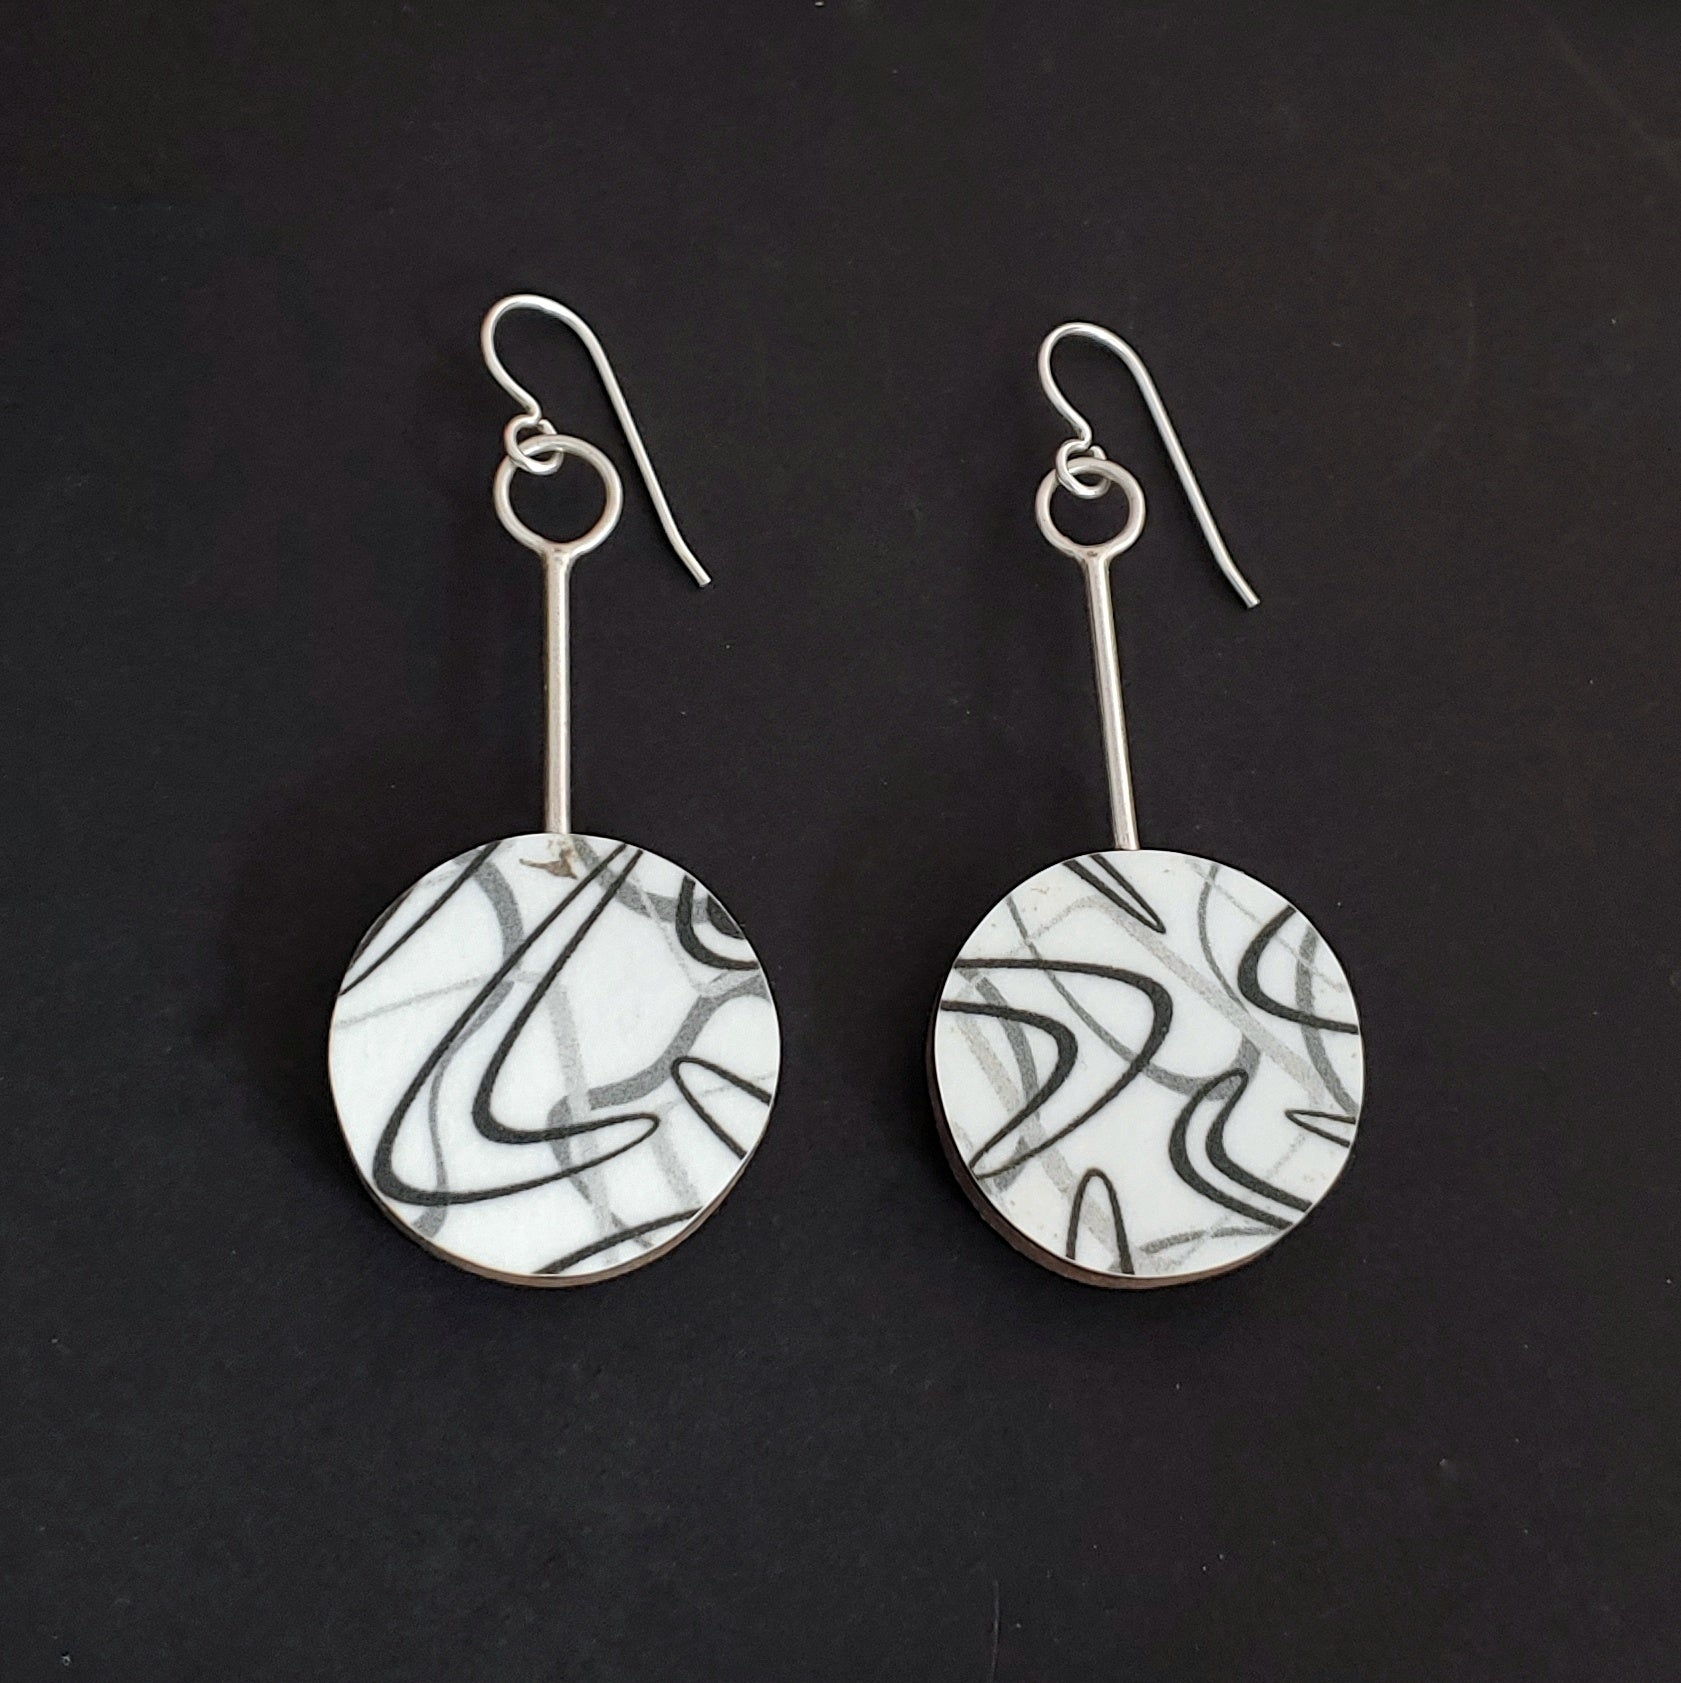 Boomerang Laminate Round Earrings - White/Black